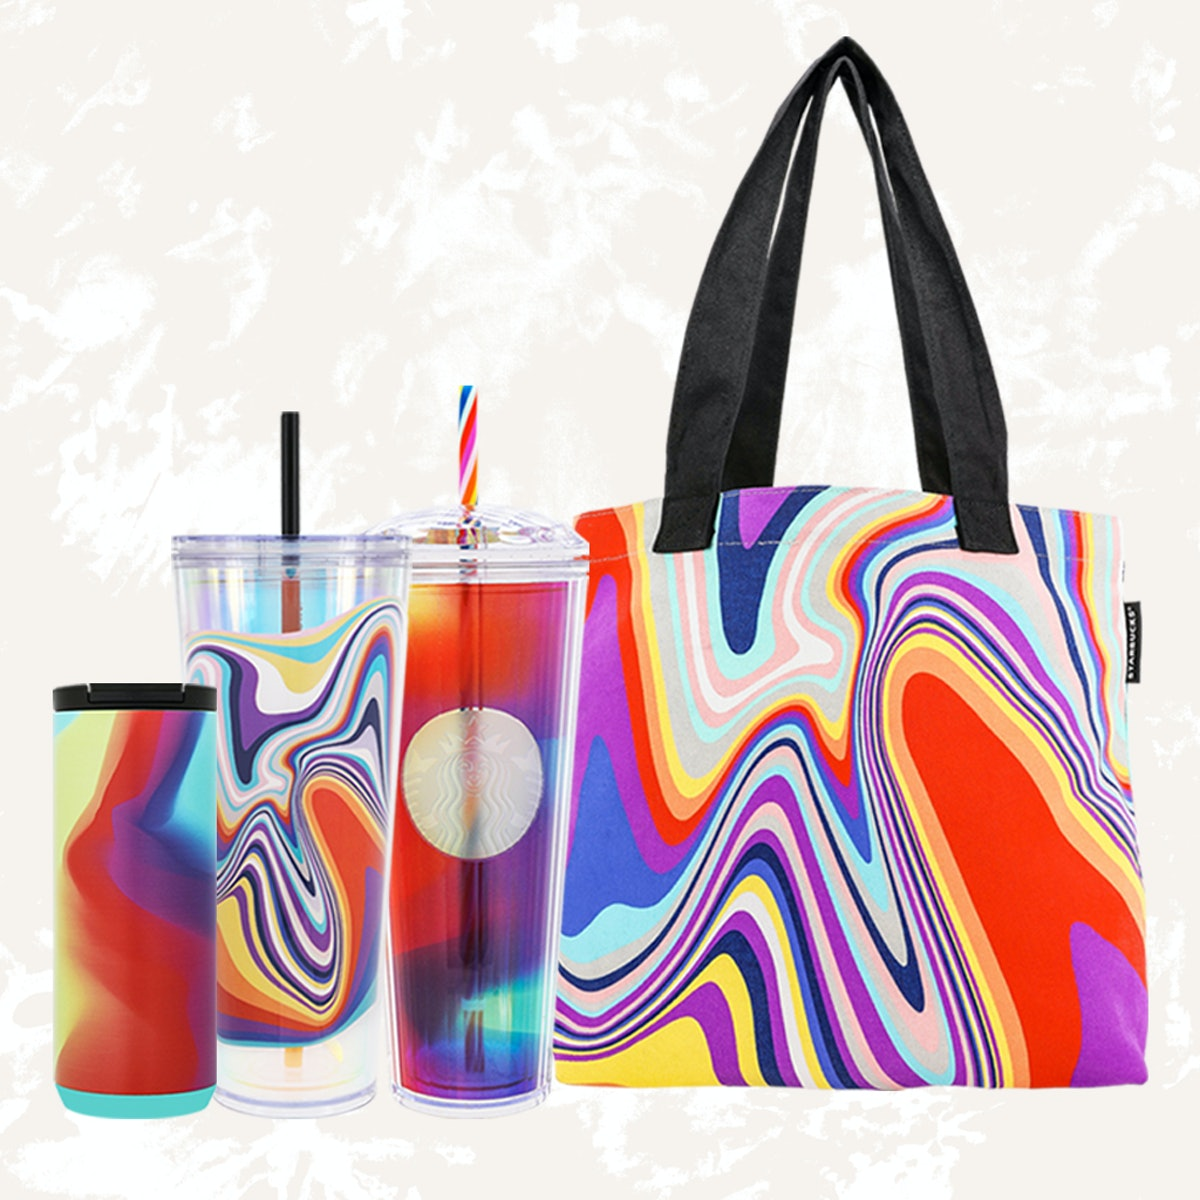 Starbucks 2021 pride merch features a tote bag and three new cups.